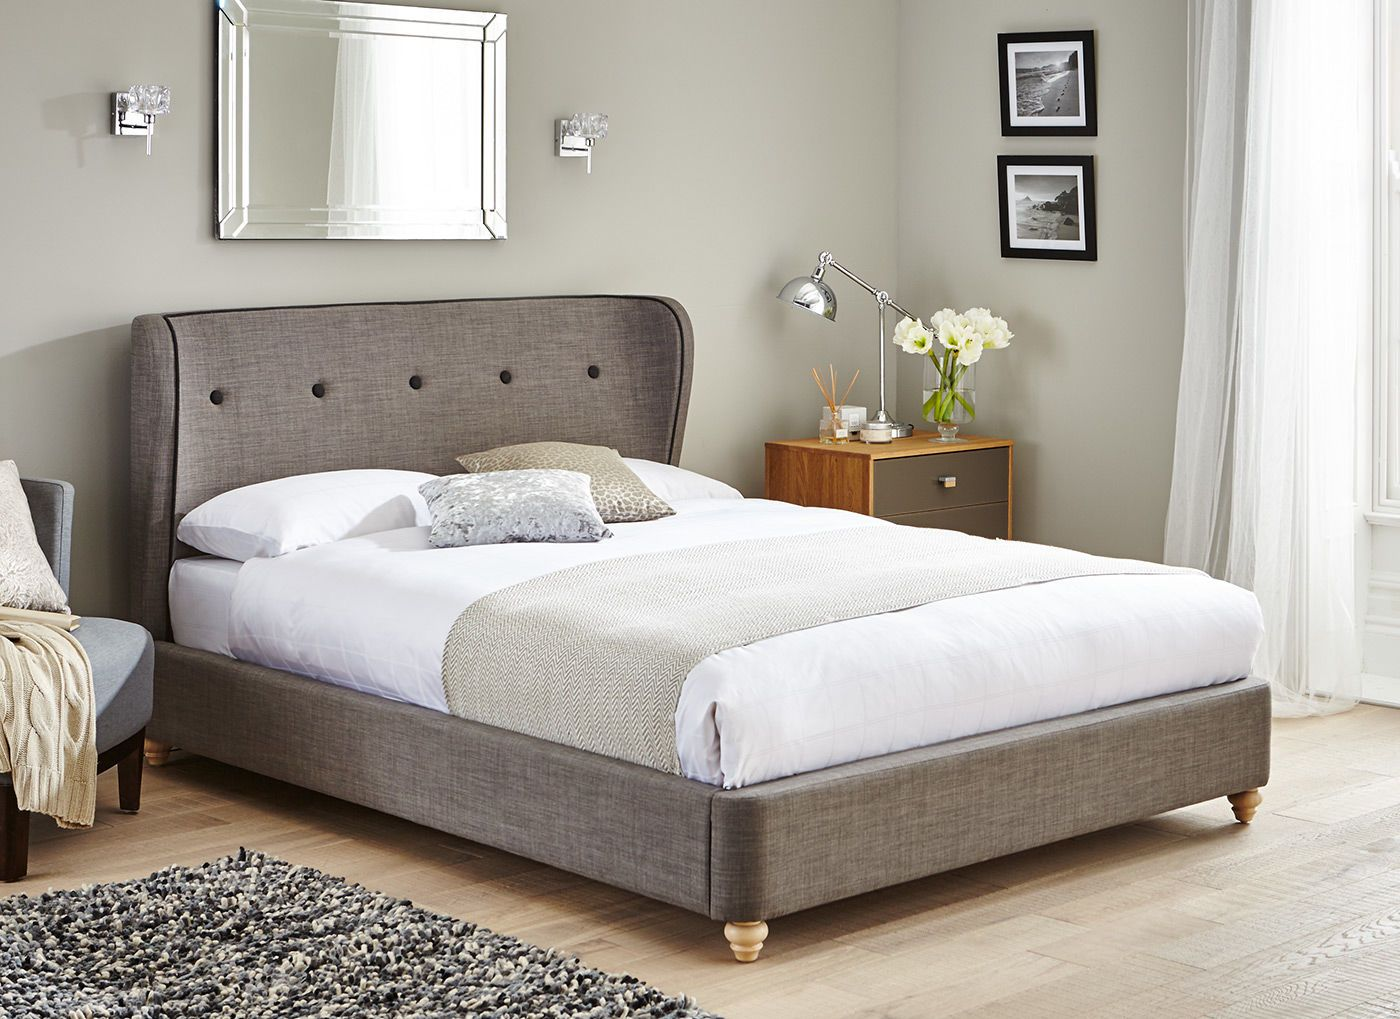 Upholstered in a grey woven fabric, this sleek bed is a